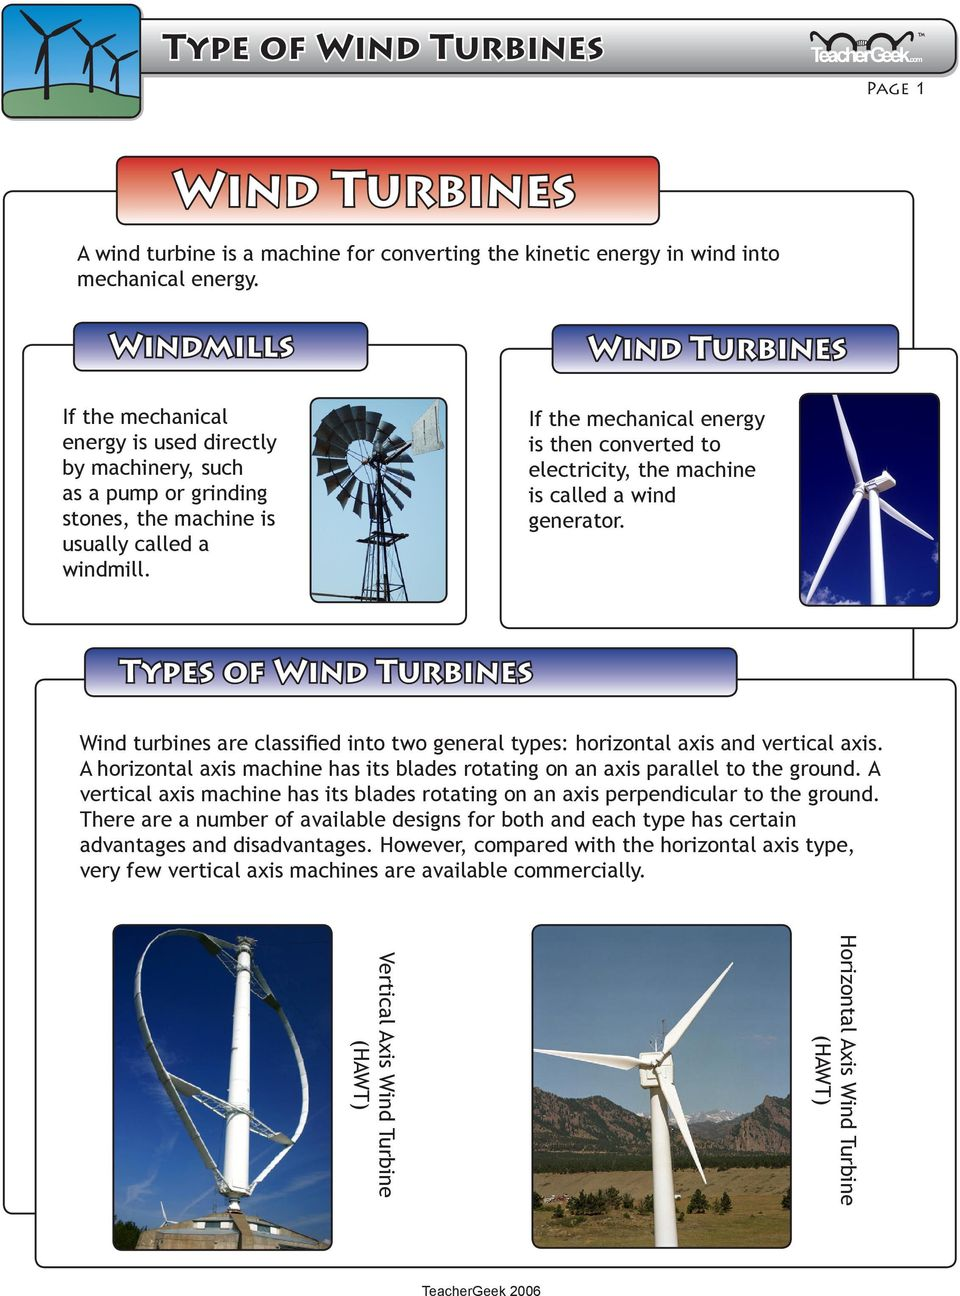 A wind turbine is a machine for converting the kinetic